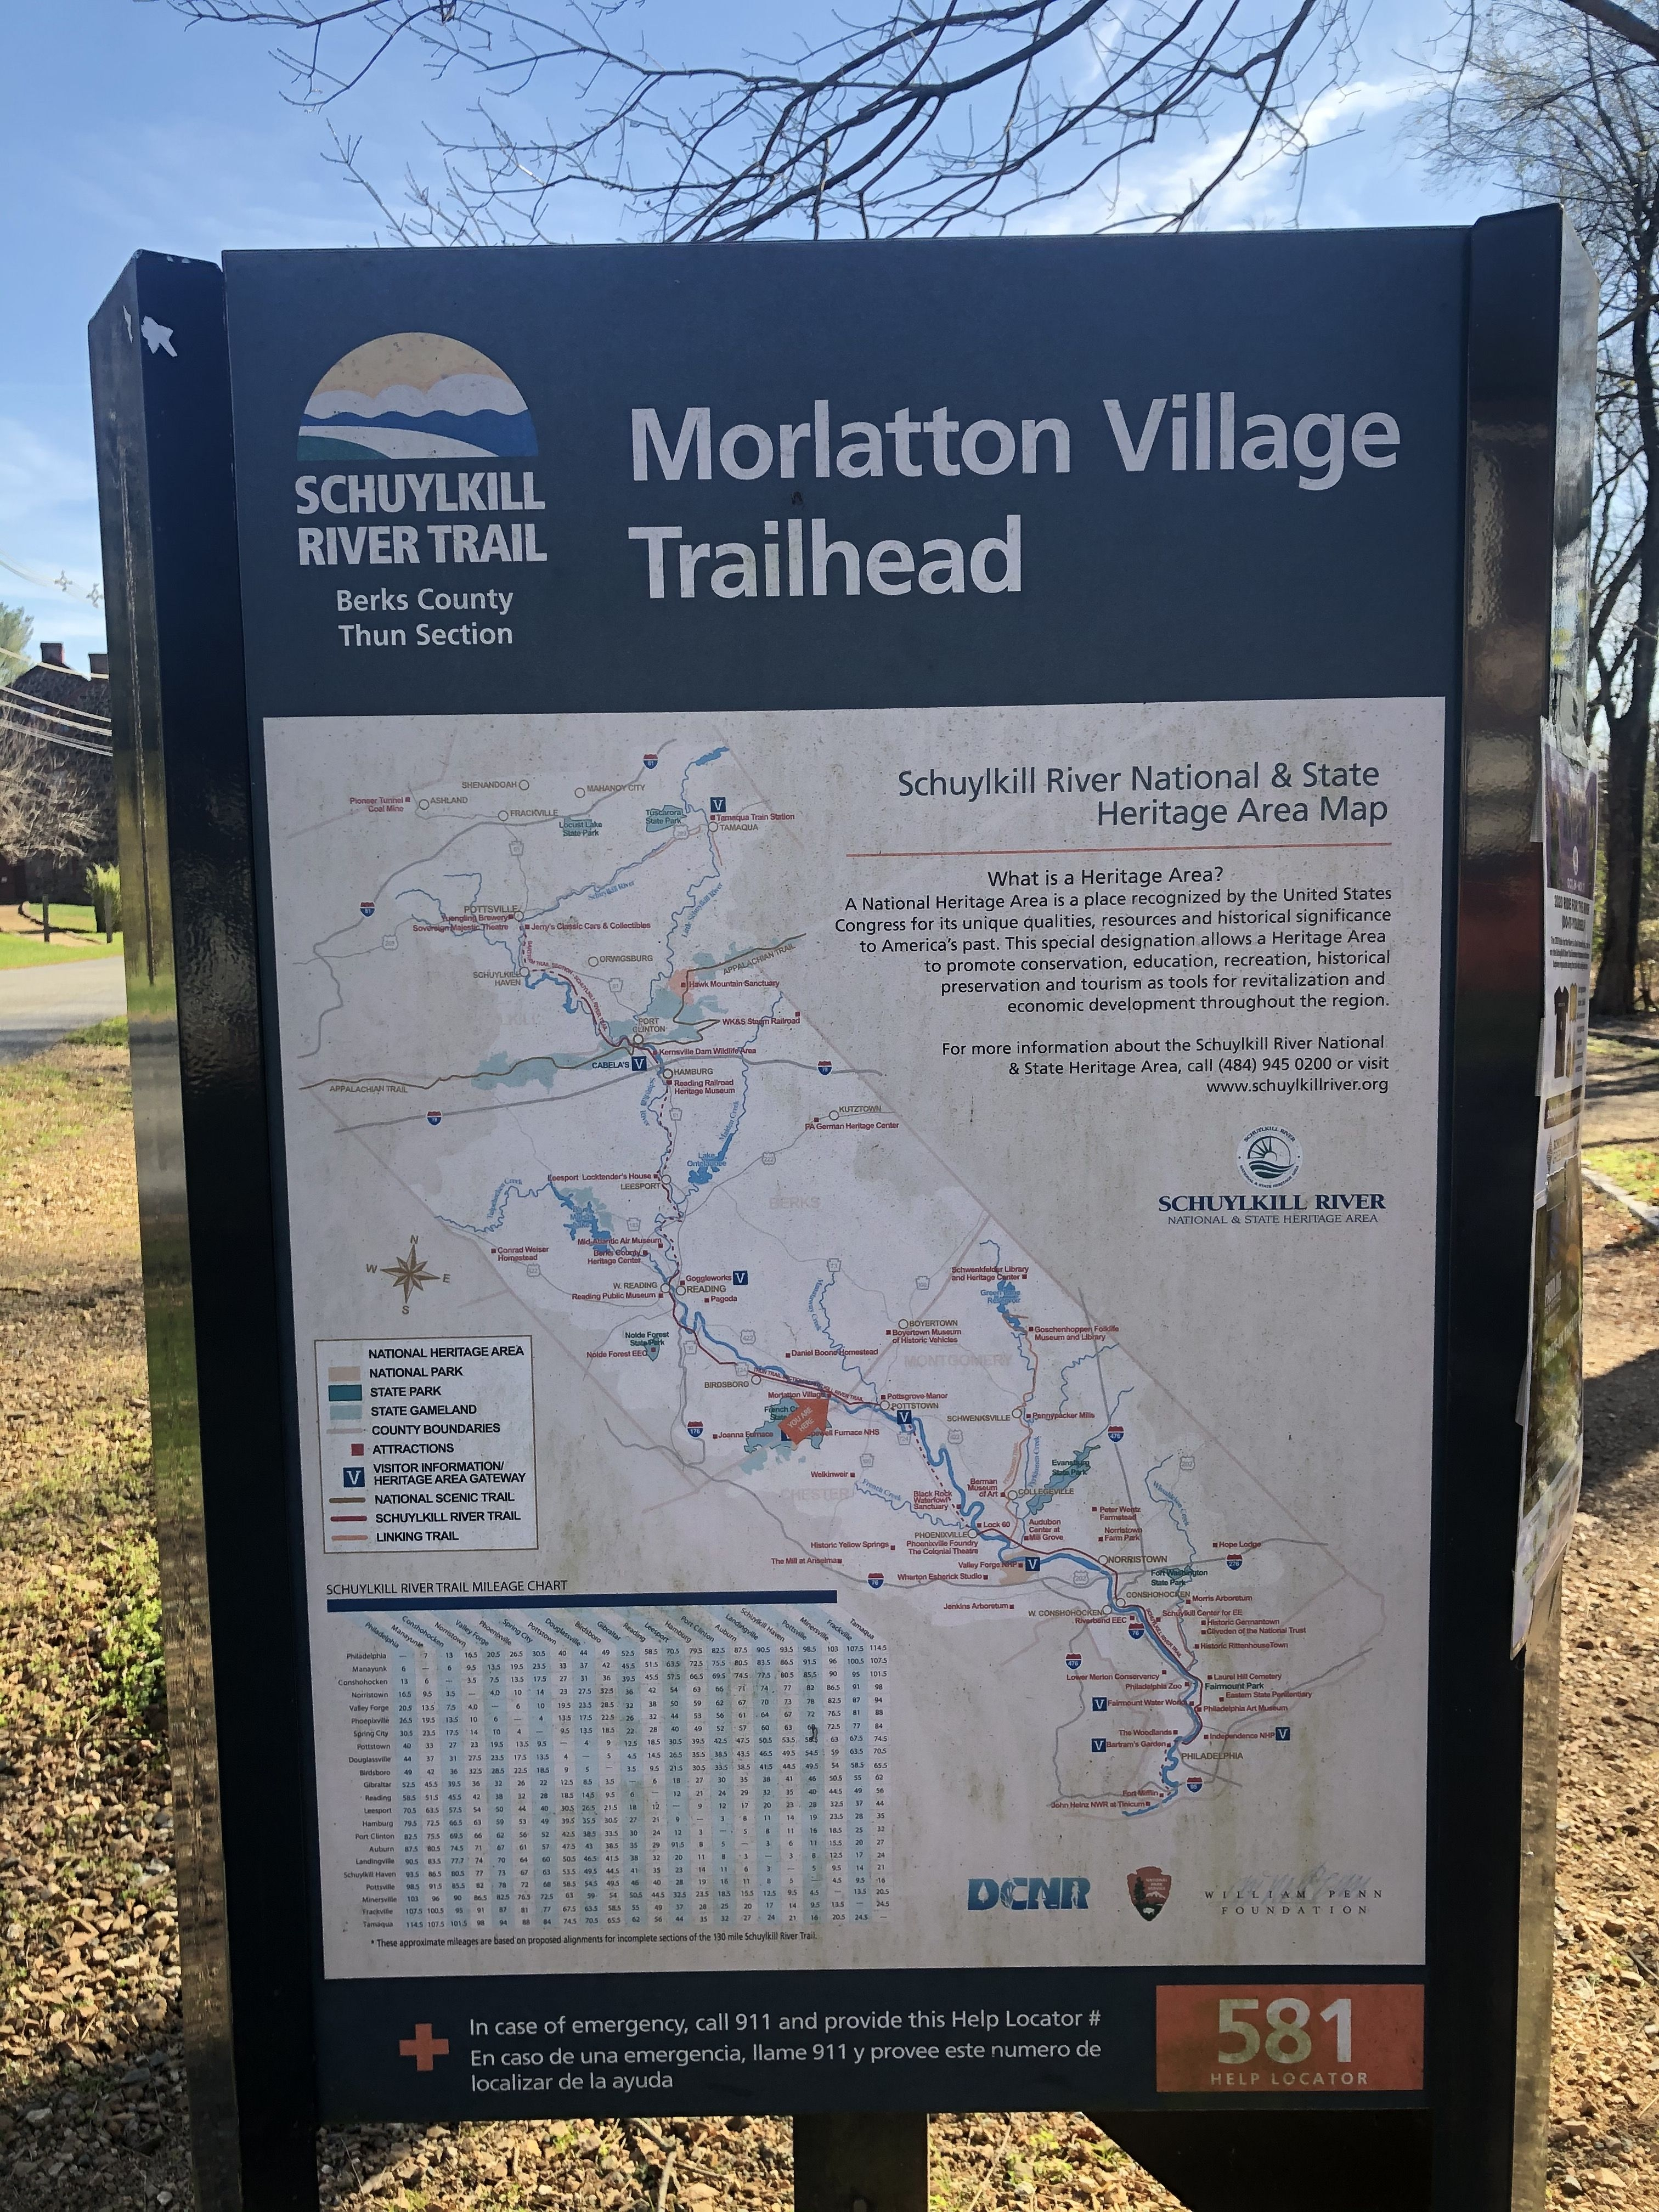 Morlatton Village Trailhead Marker